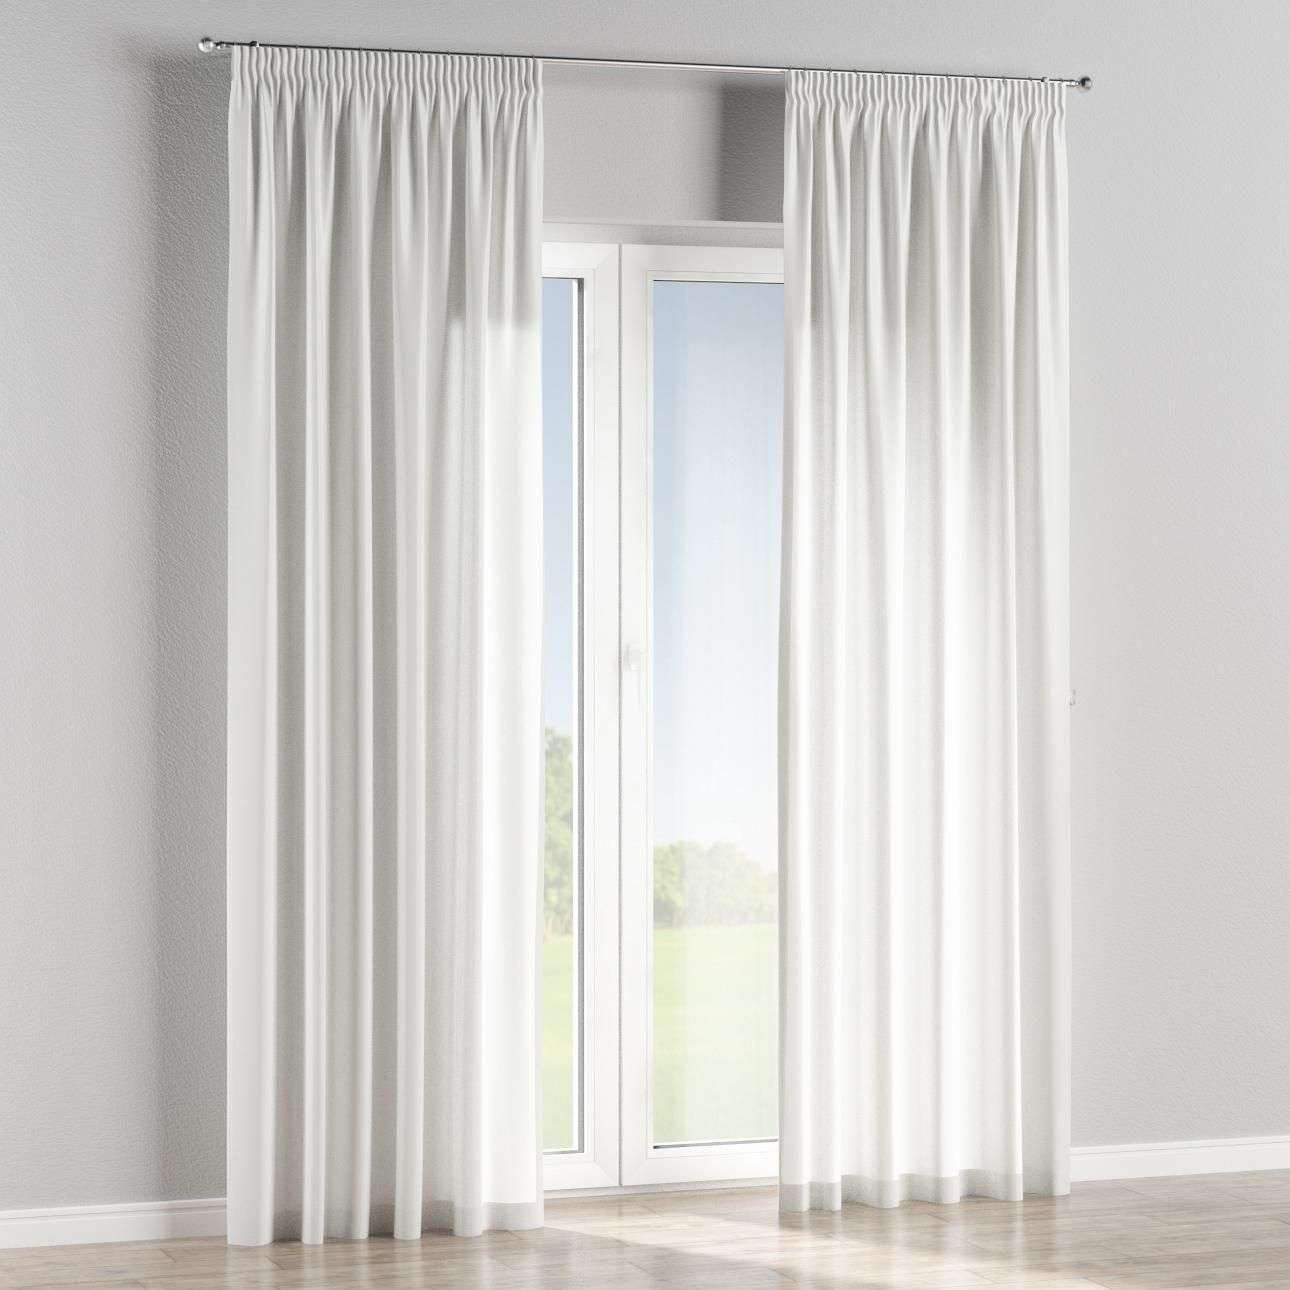 Pencil pleat lined curtains in collection Londres, fabric: 122-03